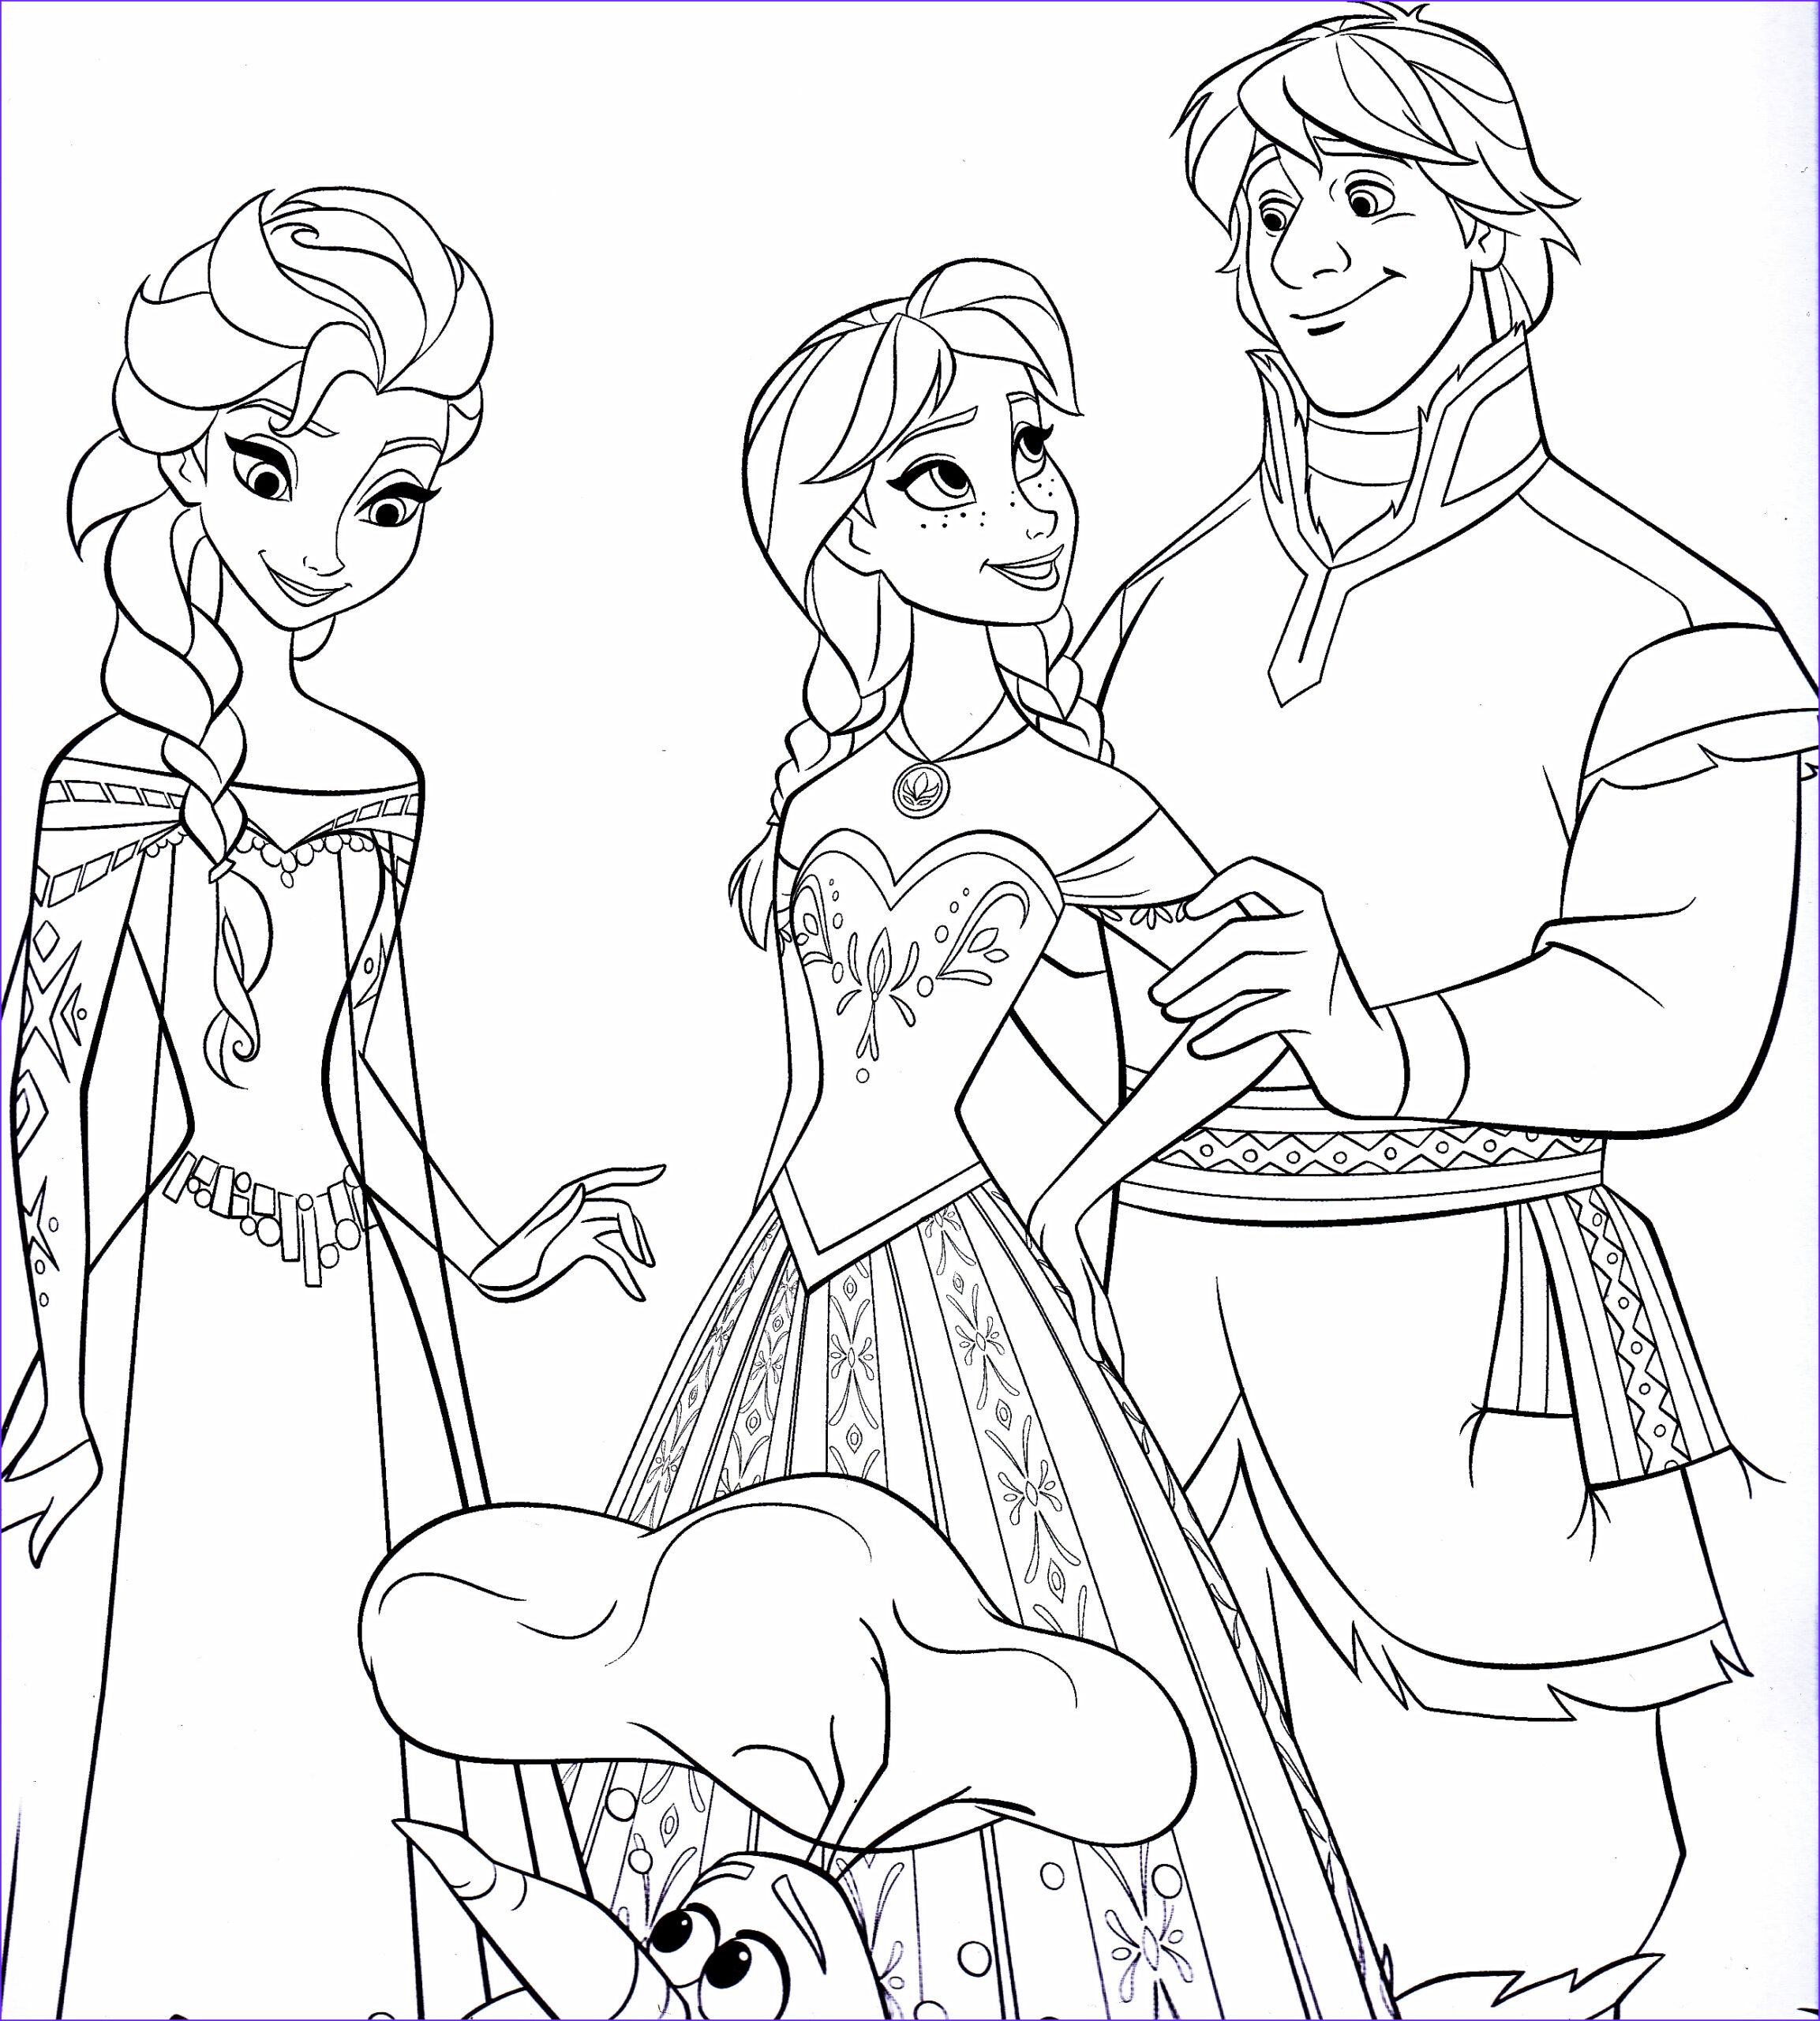 Elsa and Anna Coloring Pages Beautiful Image Free Printable Coloring Pages Elsa and Anna 2015